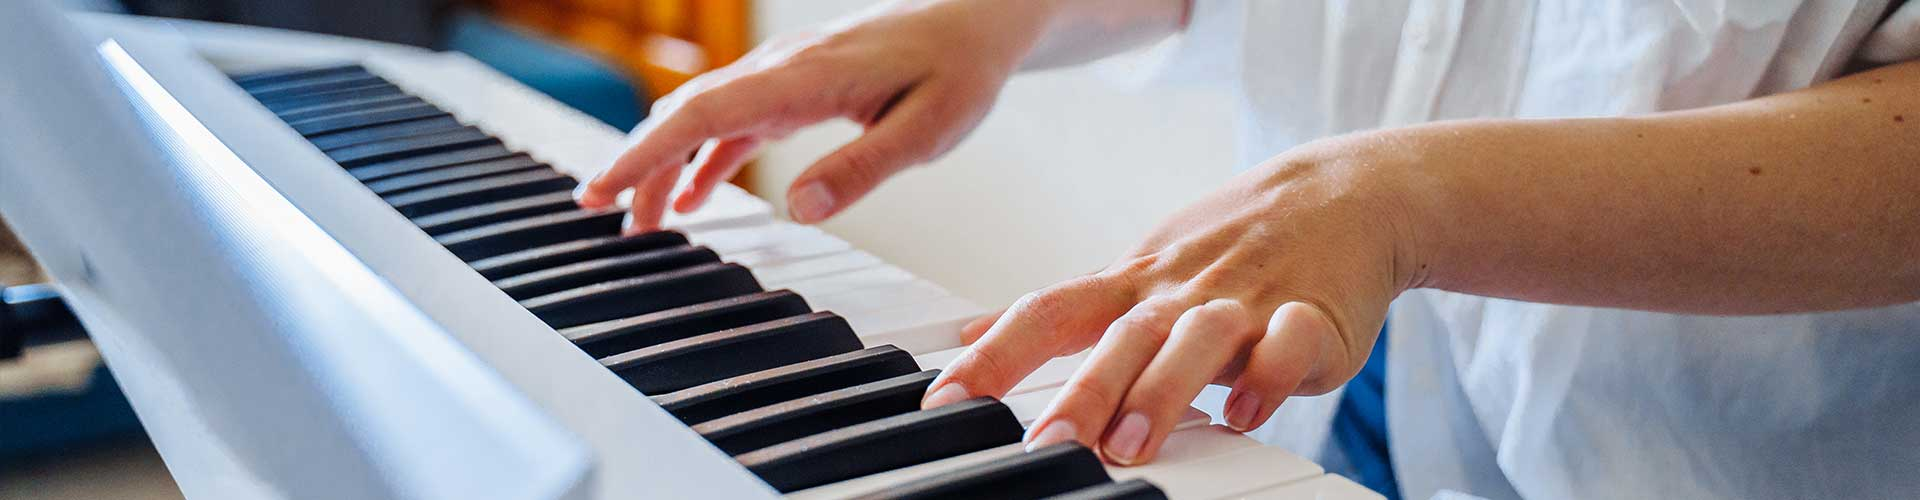 Adult leaning piano